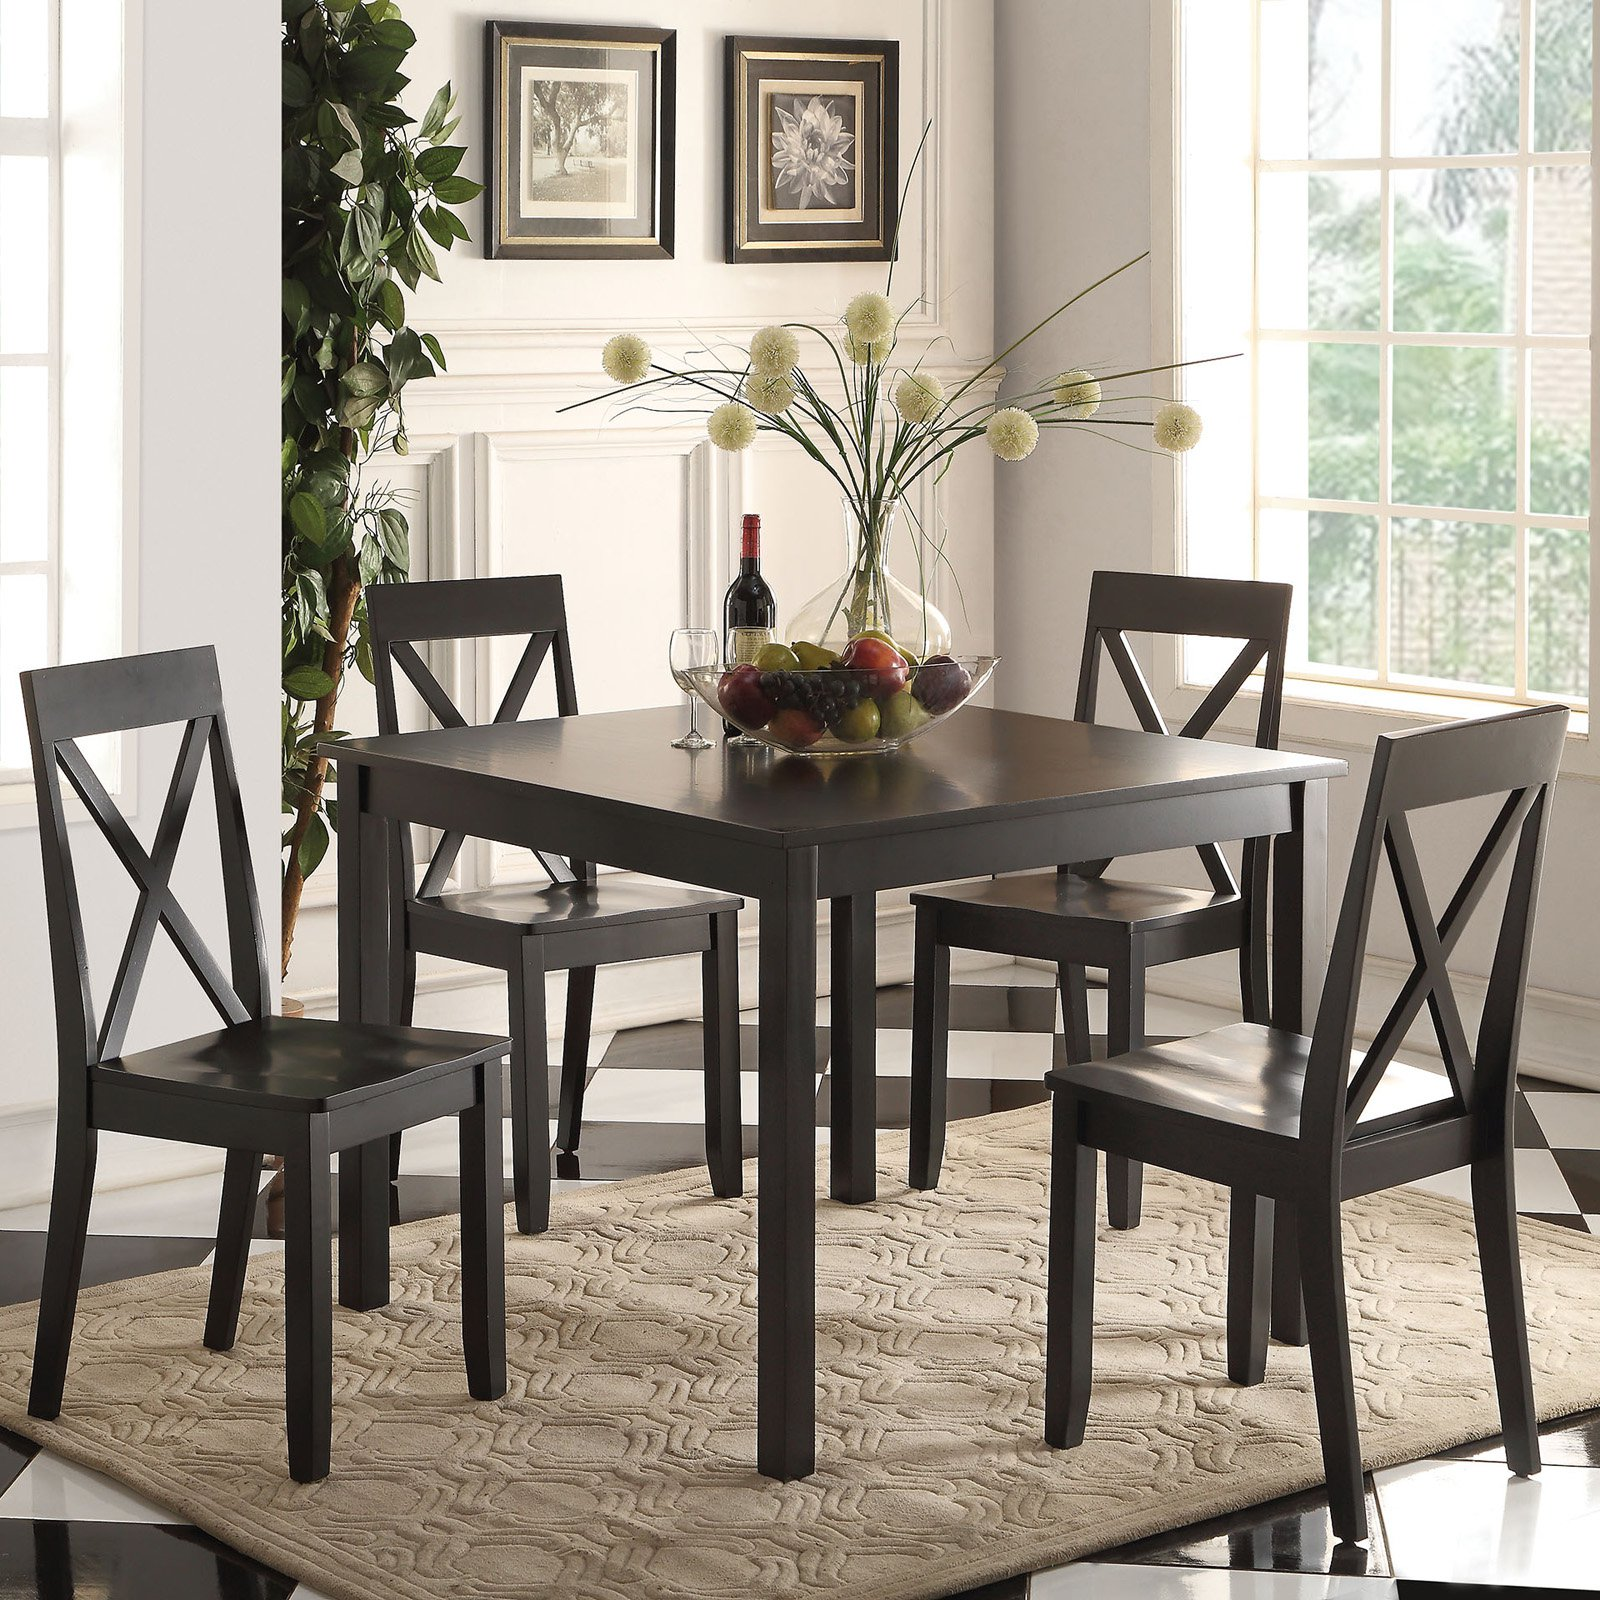 Acme Furniture Zlipury 5 Piece Rectangular Dining Table Set by Overstock